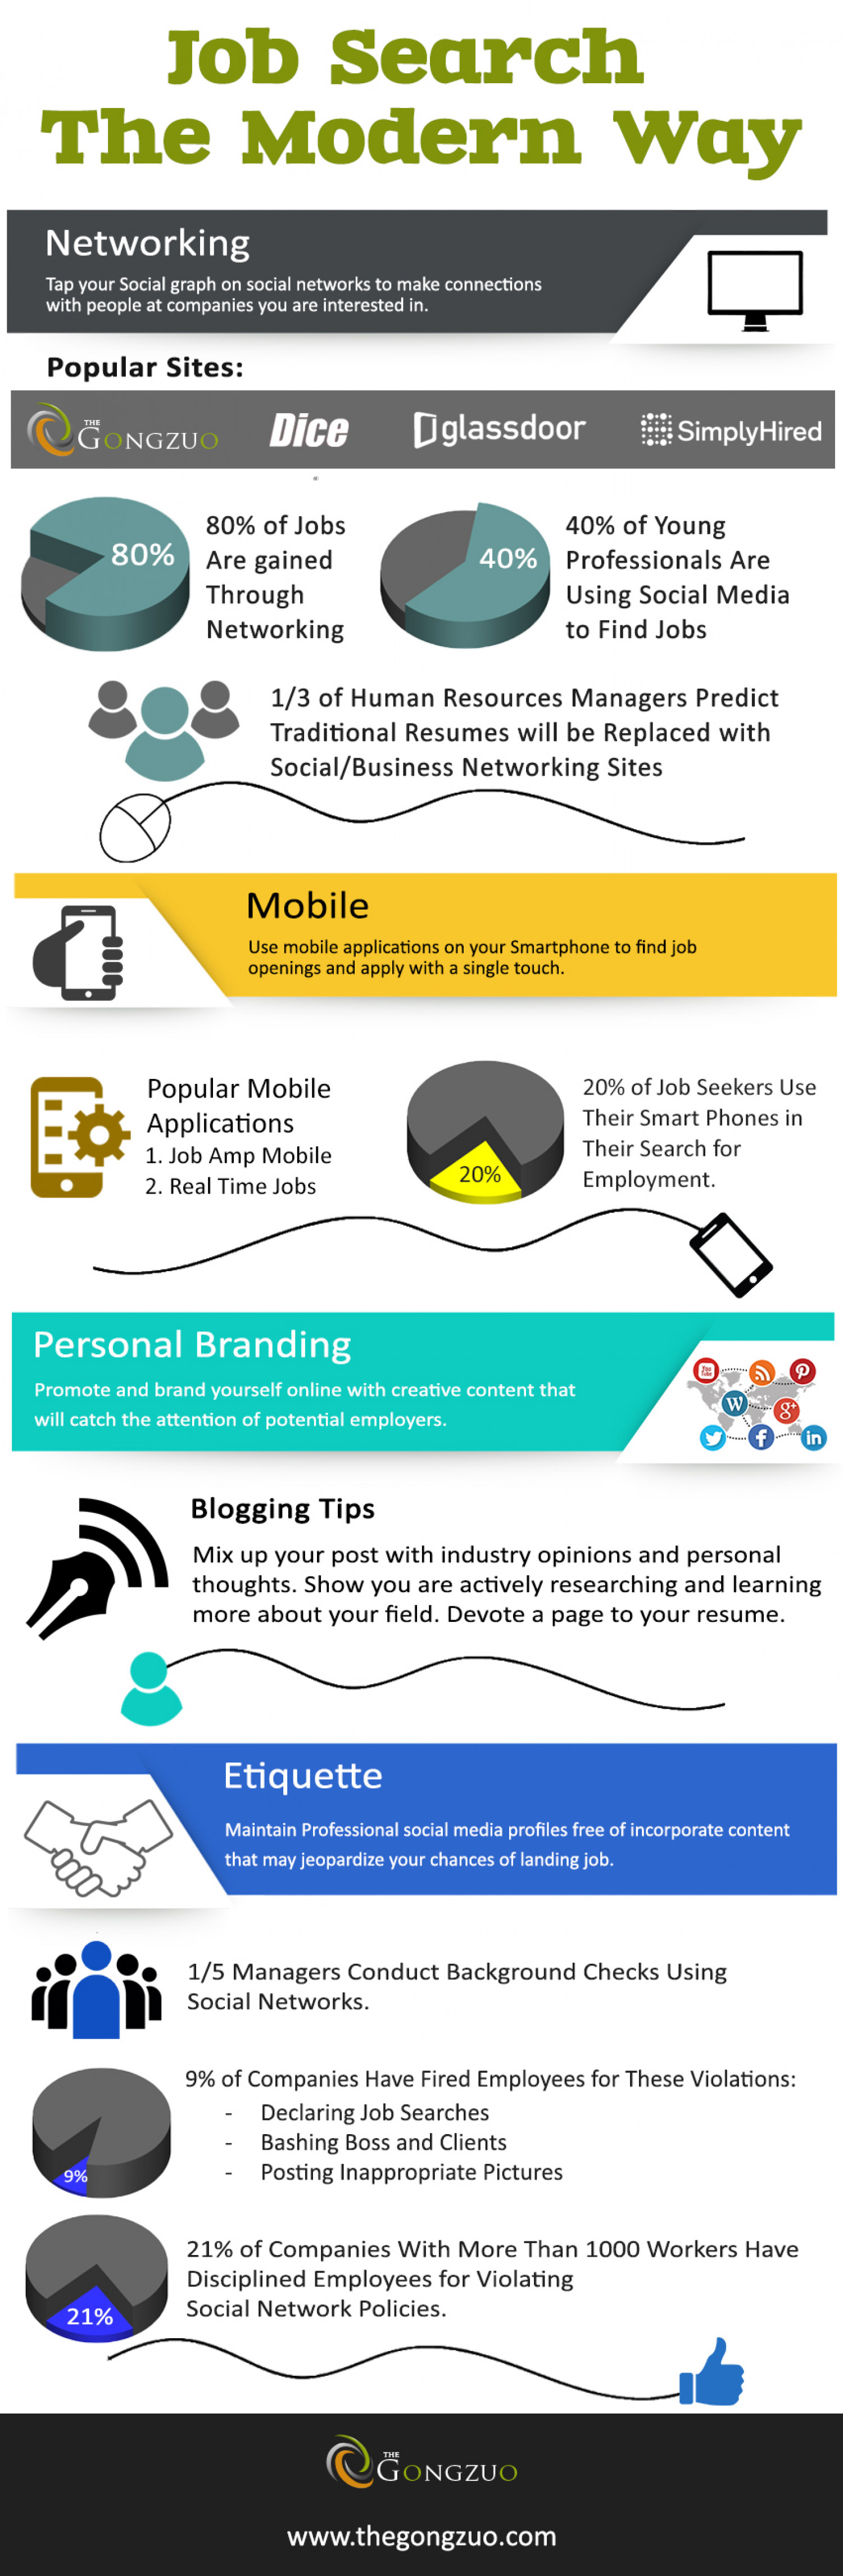 job search the modern way visual ly job search the modern way infographic